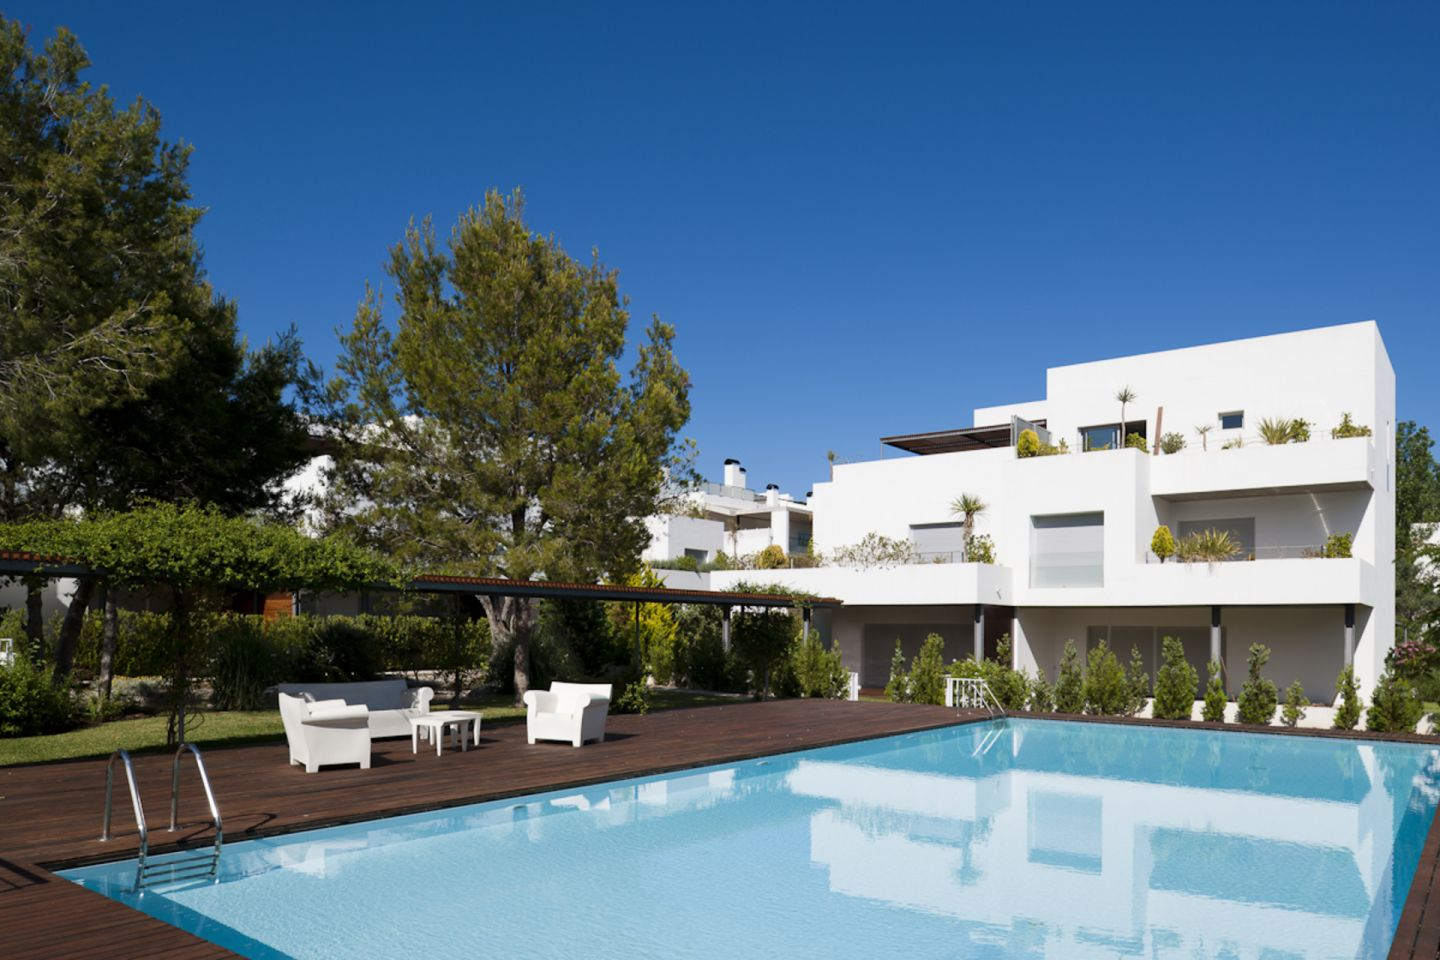 4 Bed Villa for sale in PUERTO POLLENSA 12